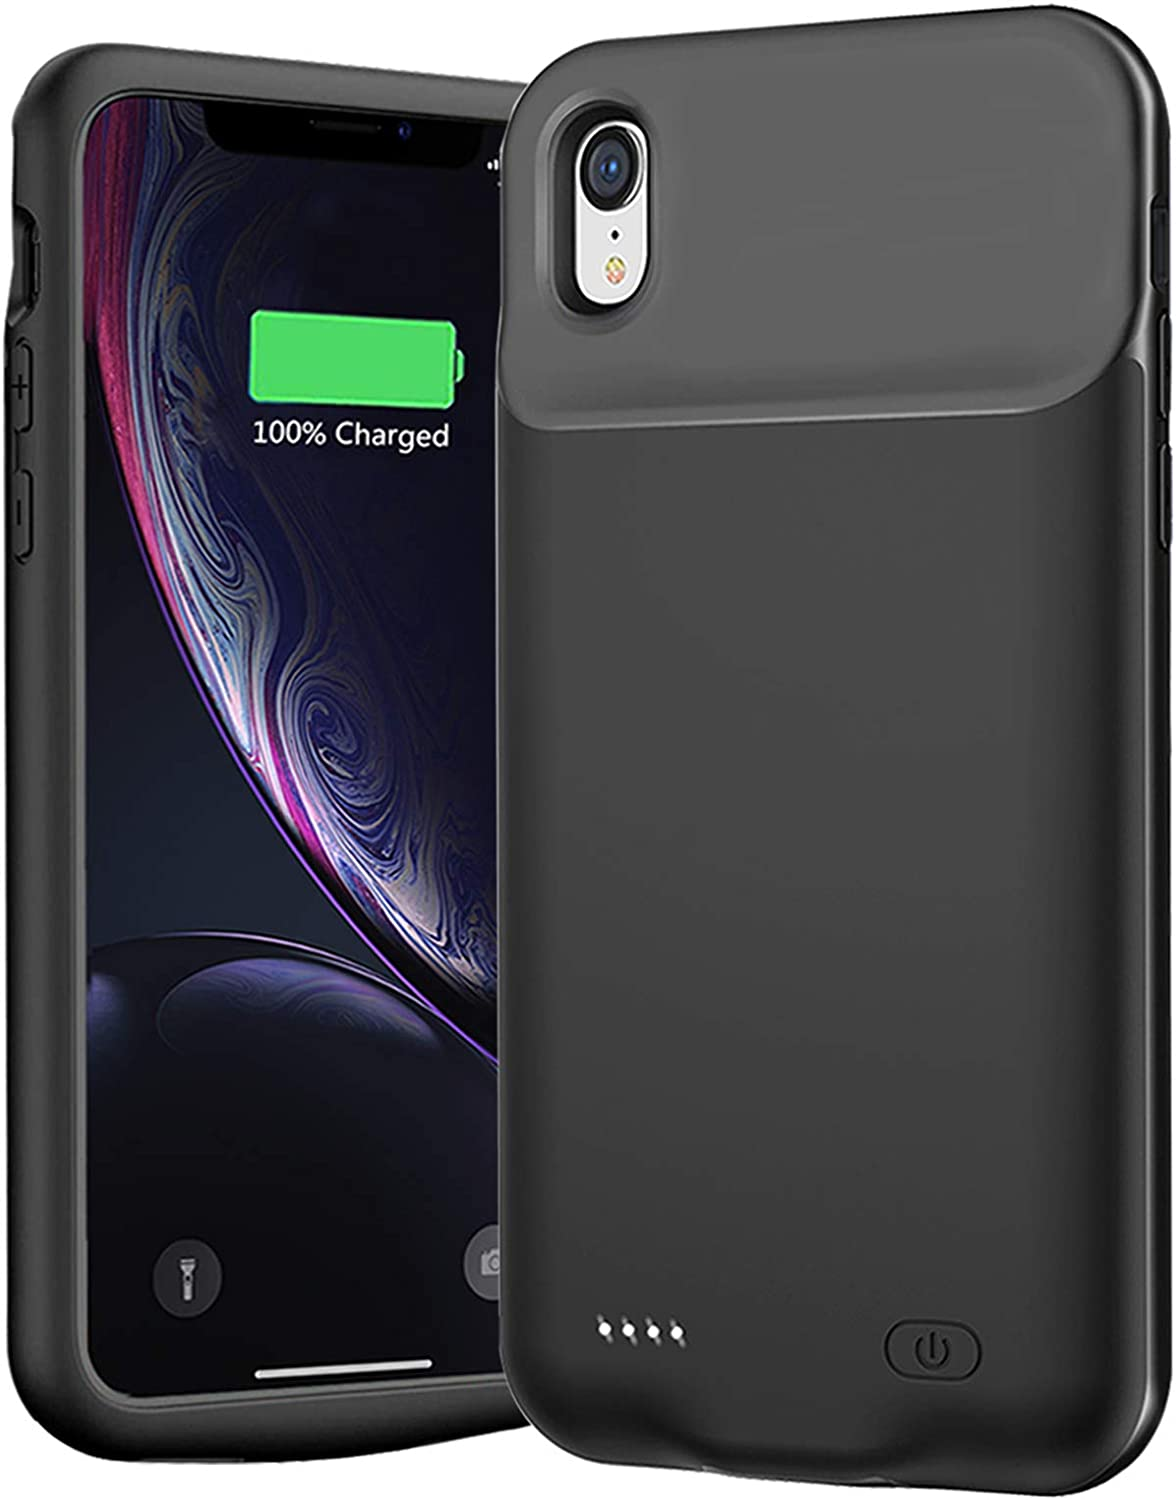 Battery Case for iPhone XR, YINGYKJ 7000mAh Portable Battery Pack Rechargeable Smart Charger Case Compatible with iPhone XR (6.1 inch) External Battery Charging Case (Black)